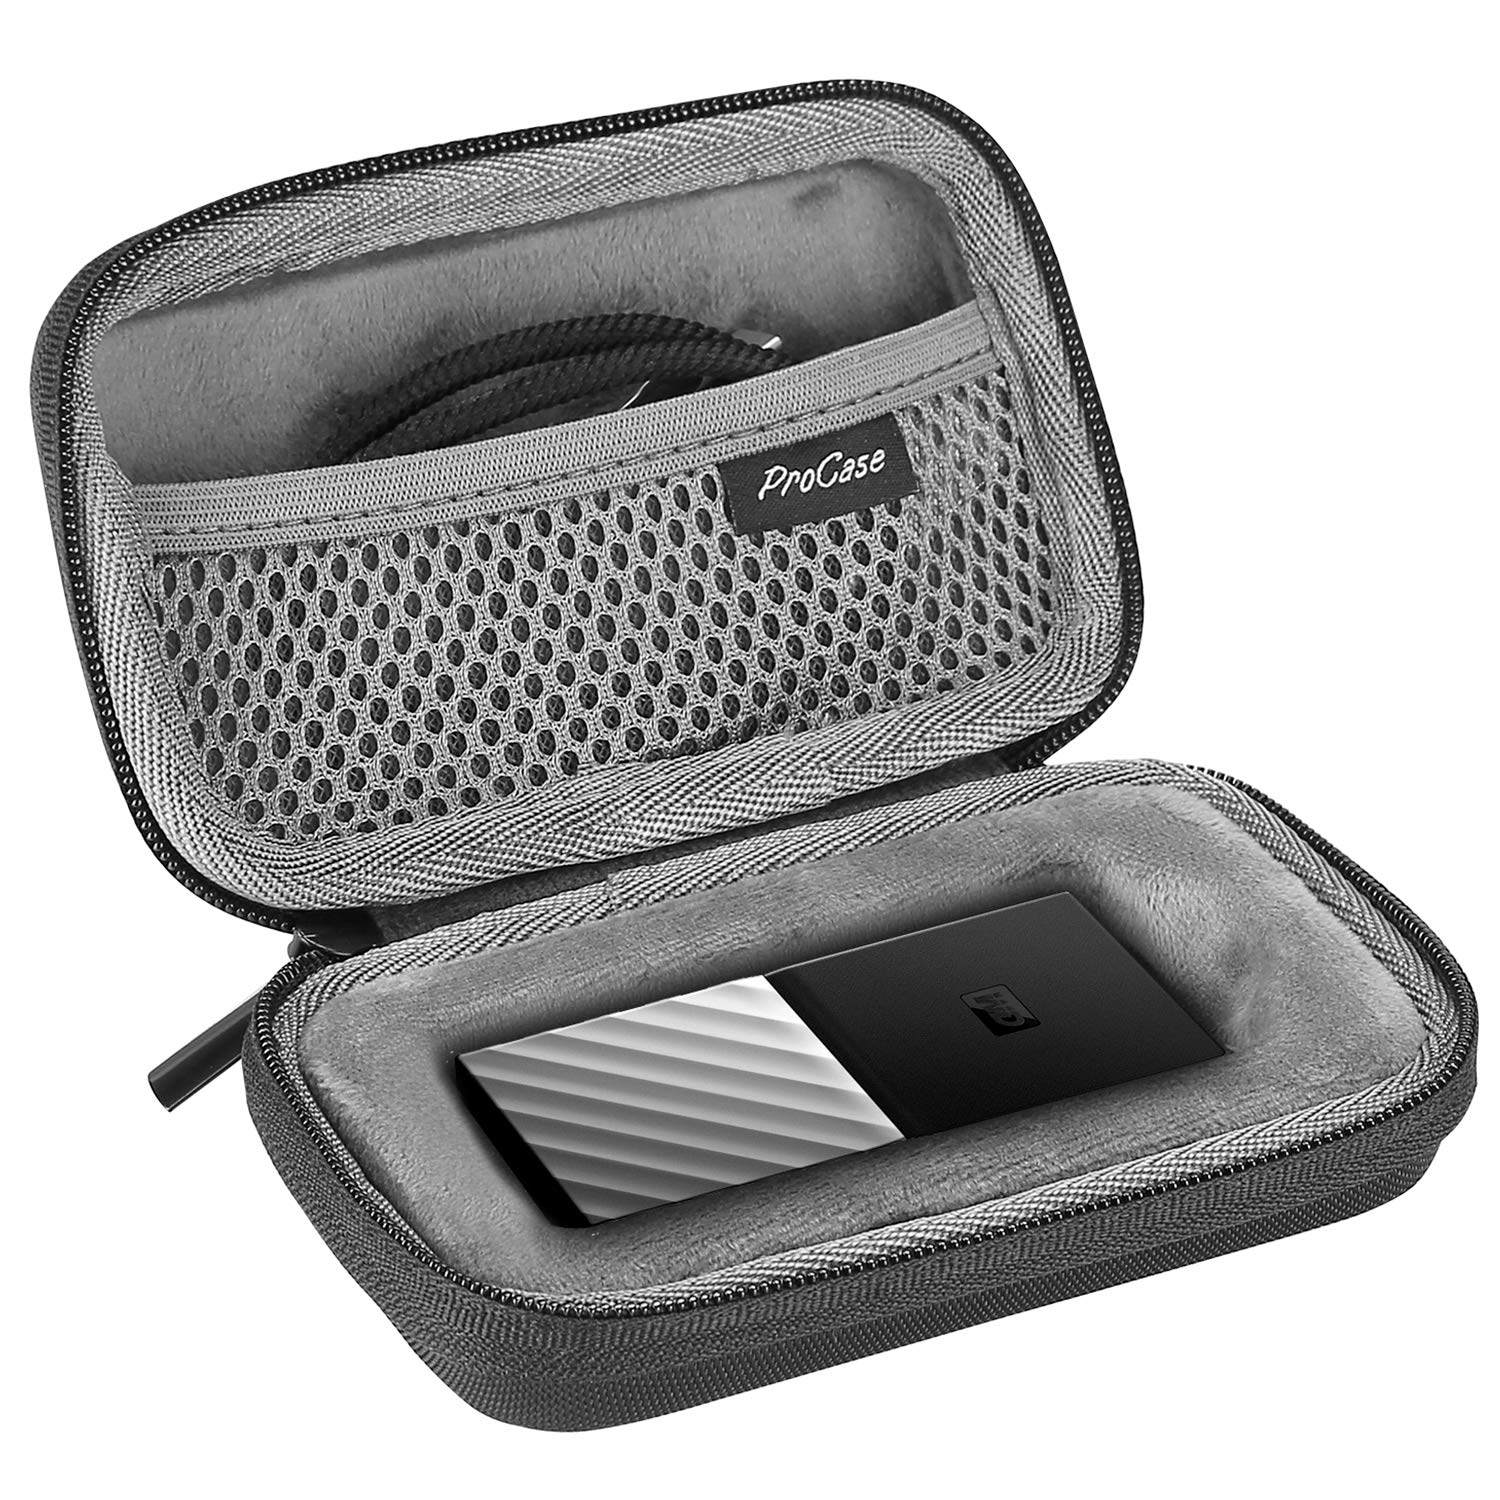 Travel Carrying Case for WD My Passport SSD Portable Storage | ProCase